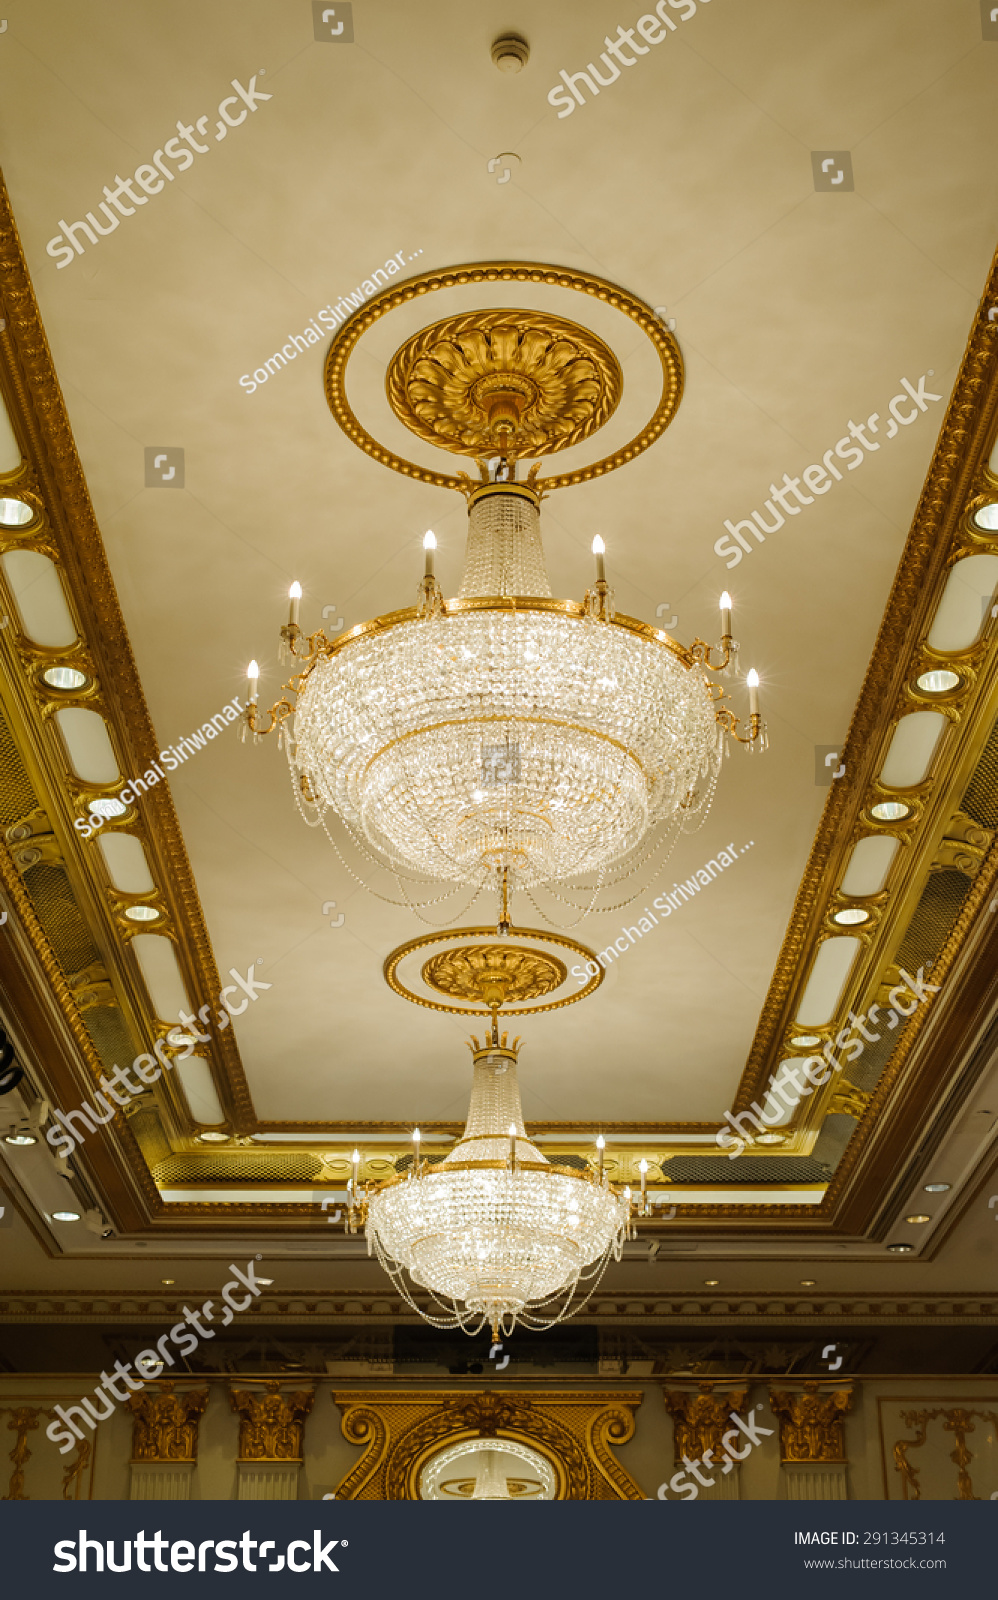 Elegant crystal chandelier stock photo 291345314 shutterstock elegant crystal chandelier arubaitofo Choice Image